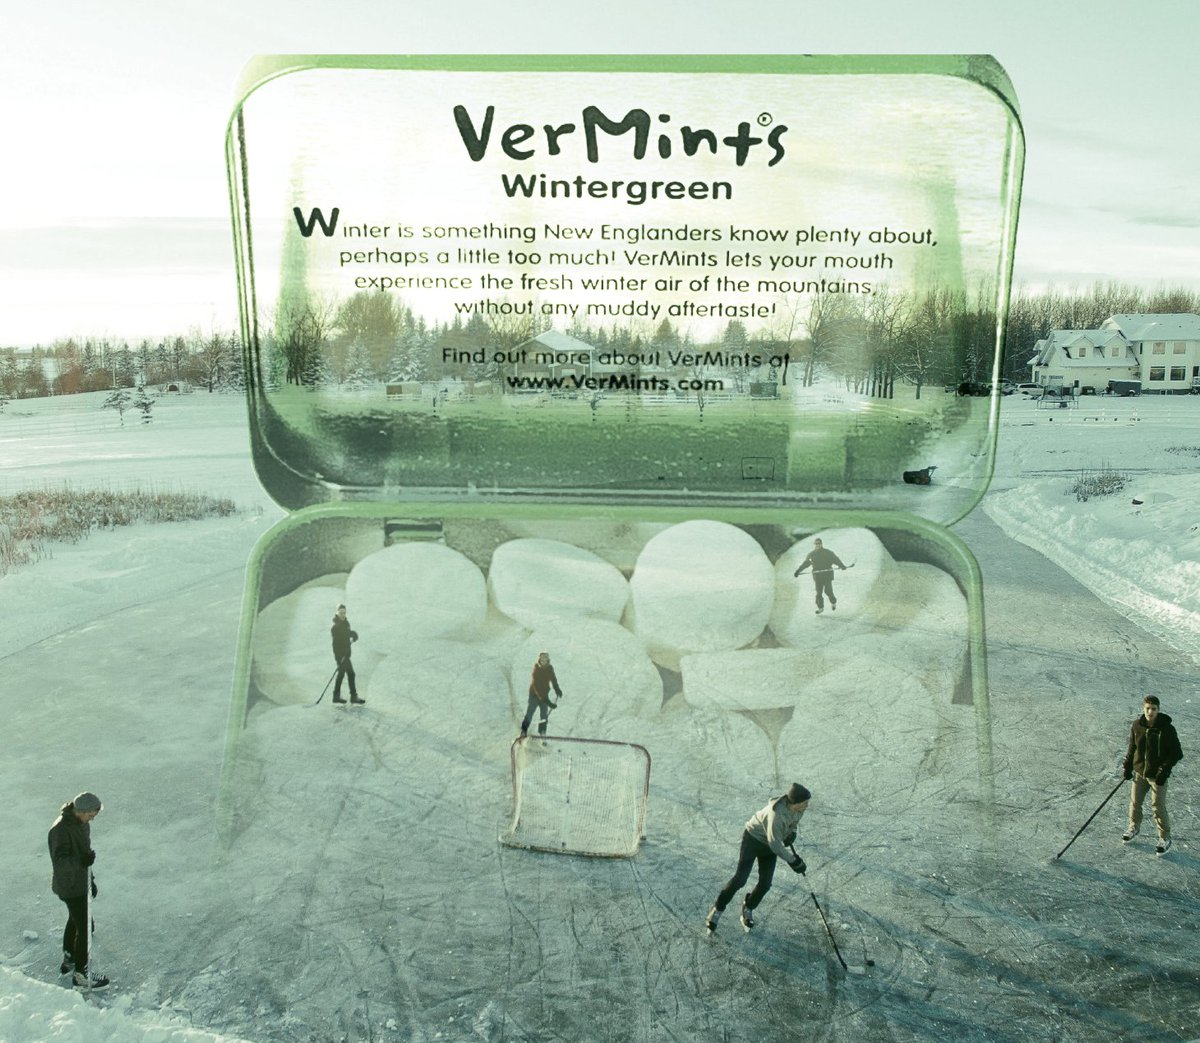 A nostalgic New England winter's day packed into every tin!  #NewEngland #Wintergreen #MemorableMoments #Natural #BogSkating #FreshAir #MintyFresh #LittleMomentsOfTruth #GrabLifeAndTasteIt #Vermints